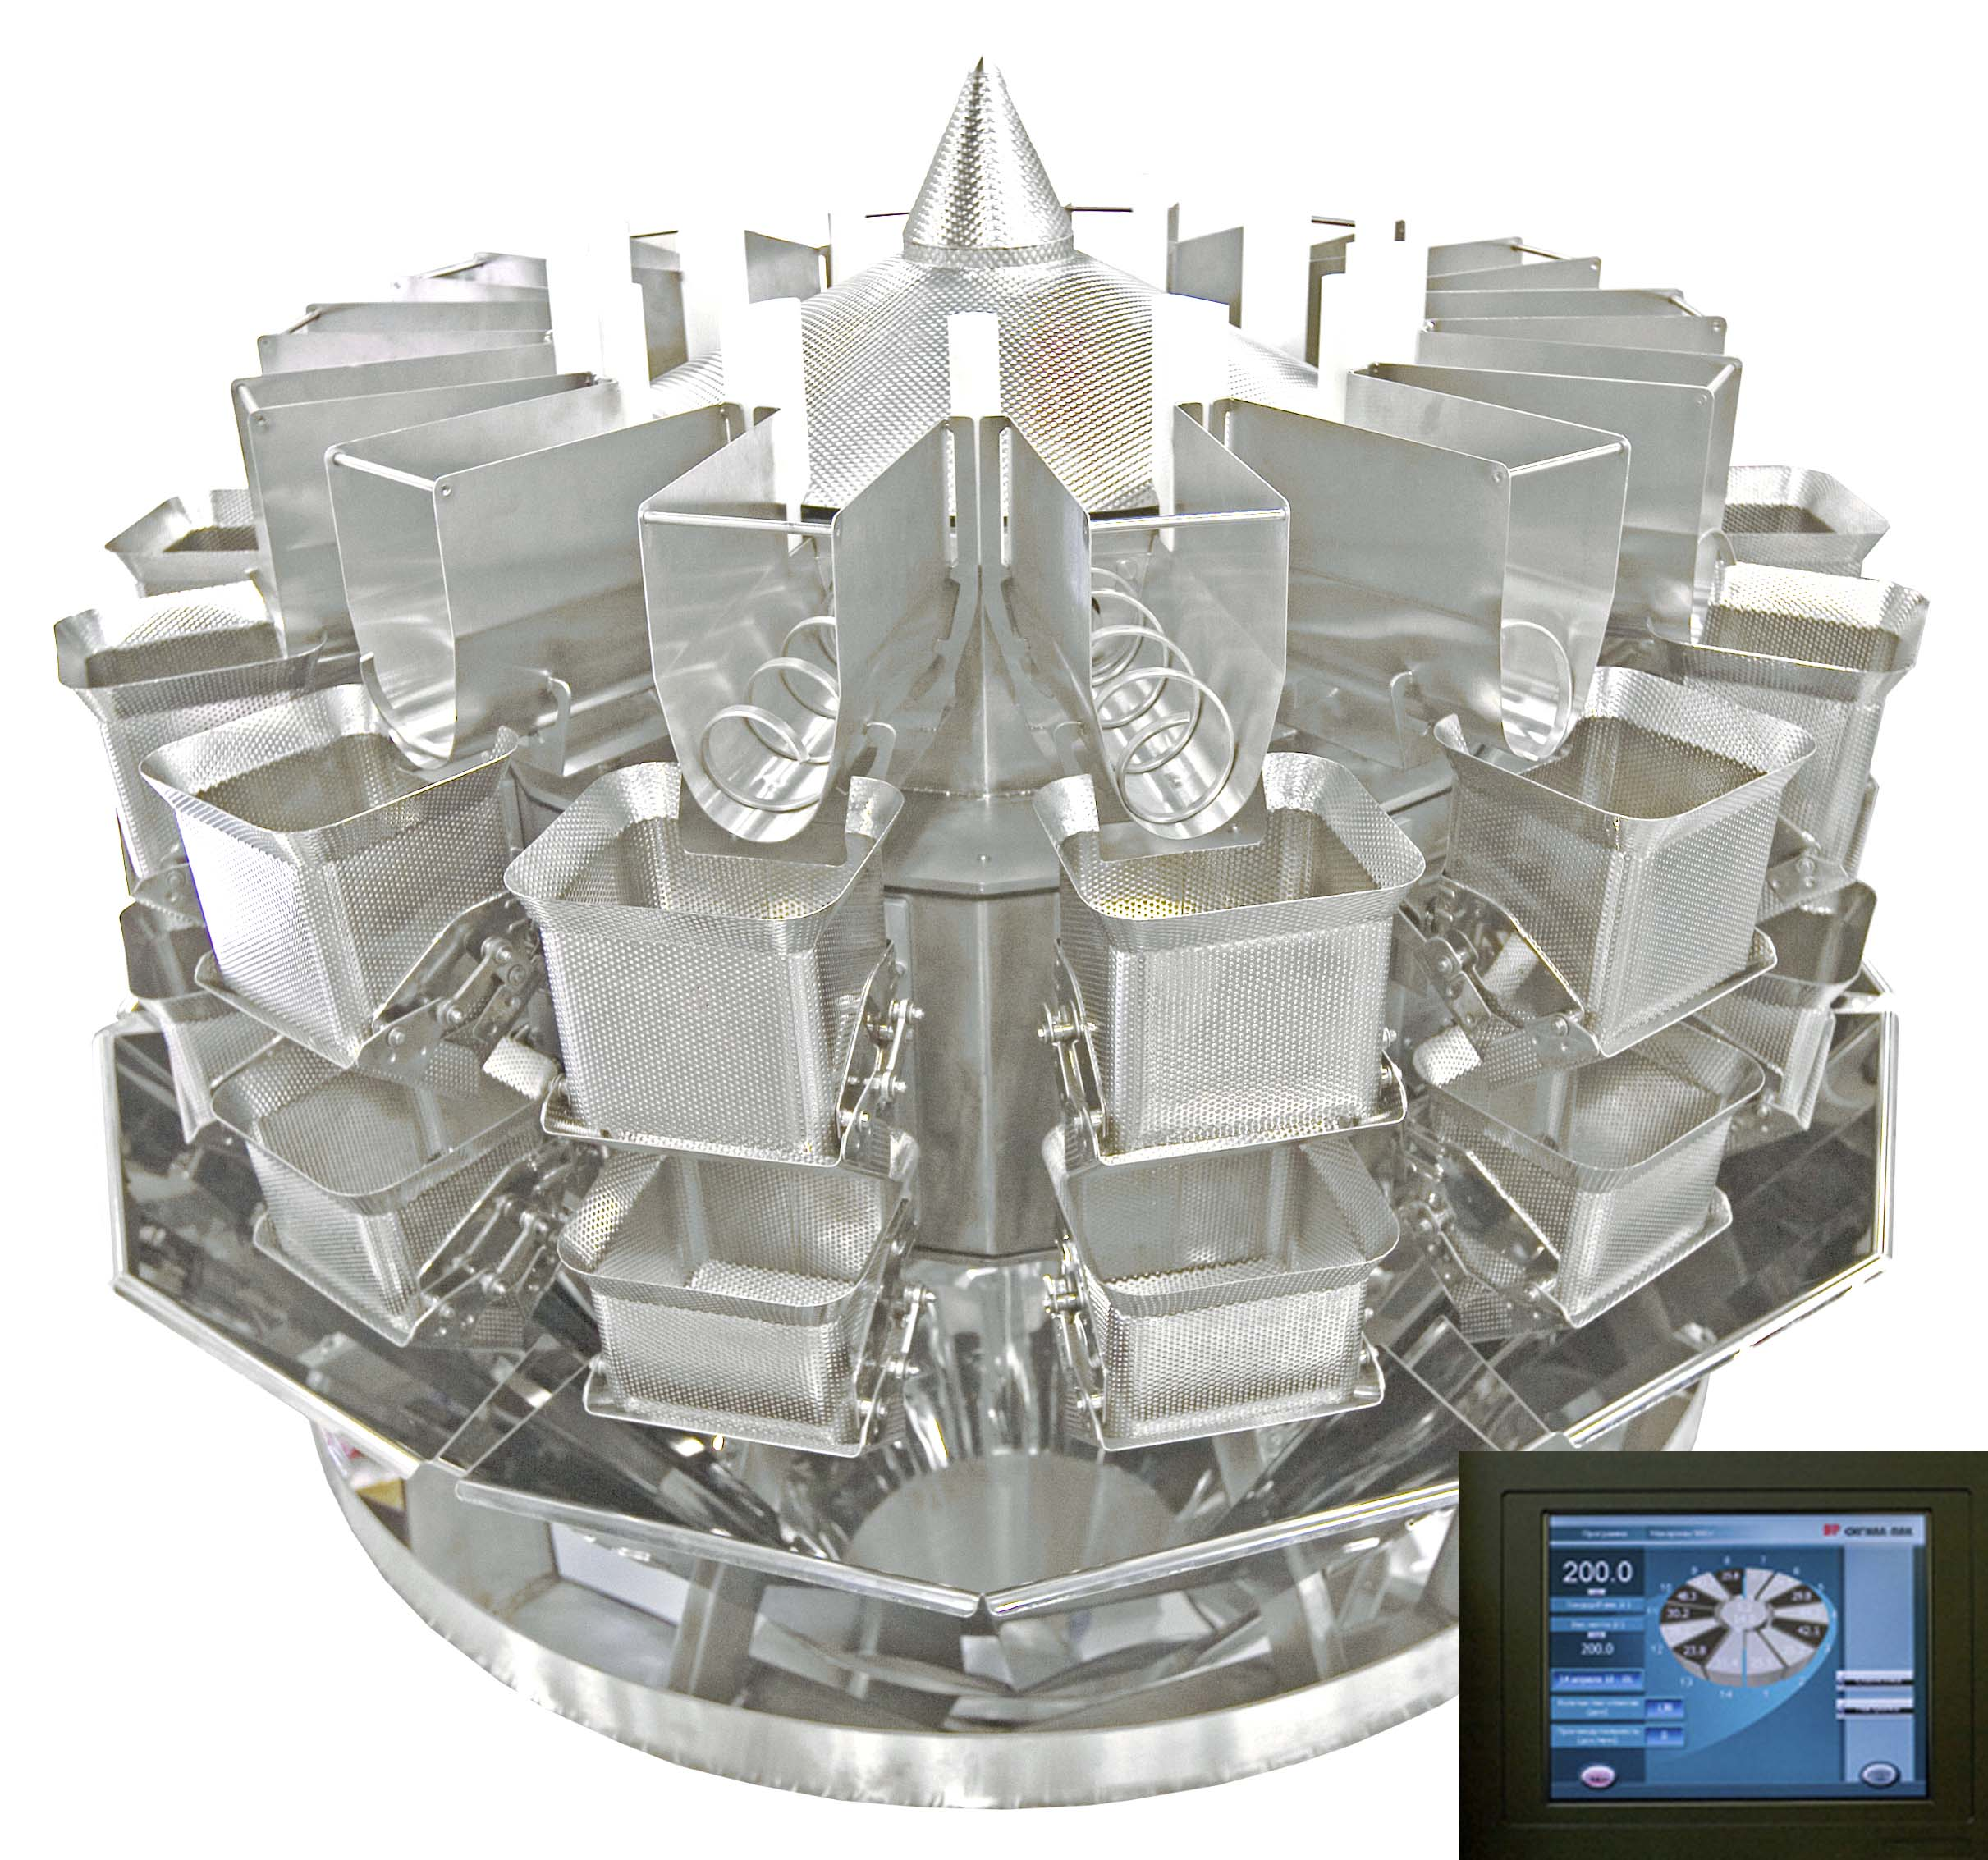 Multihead weigher SP14-2Skb